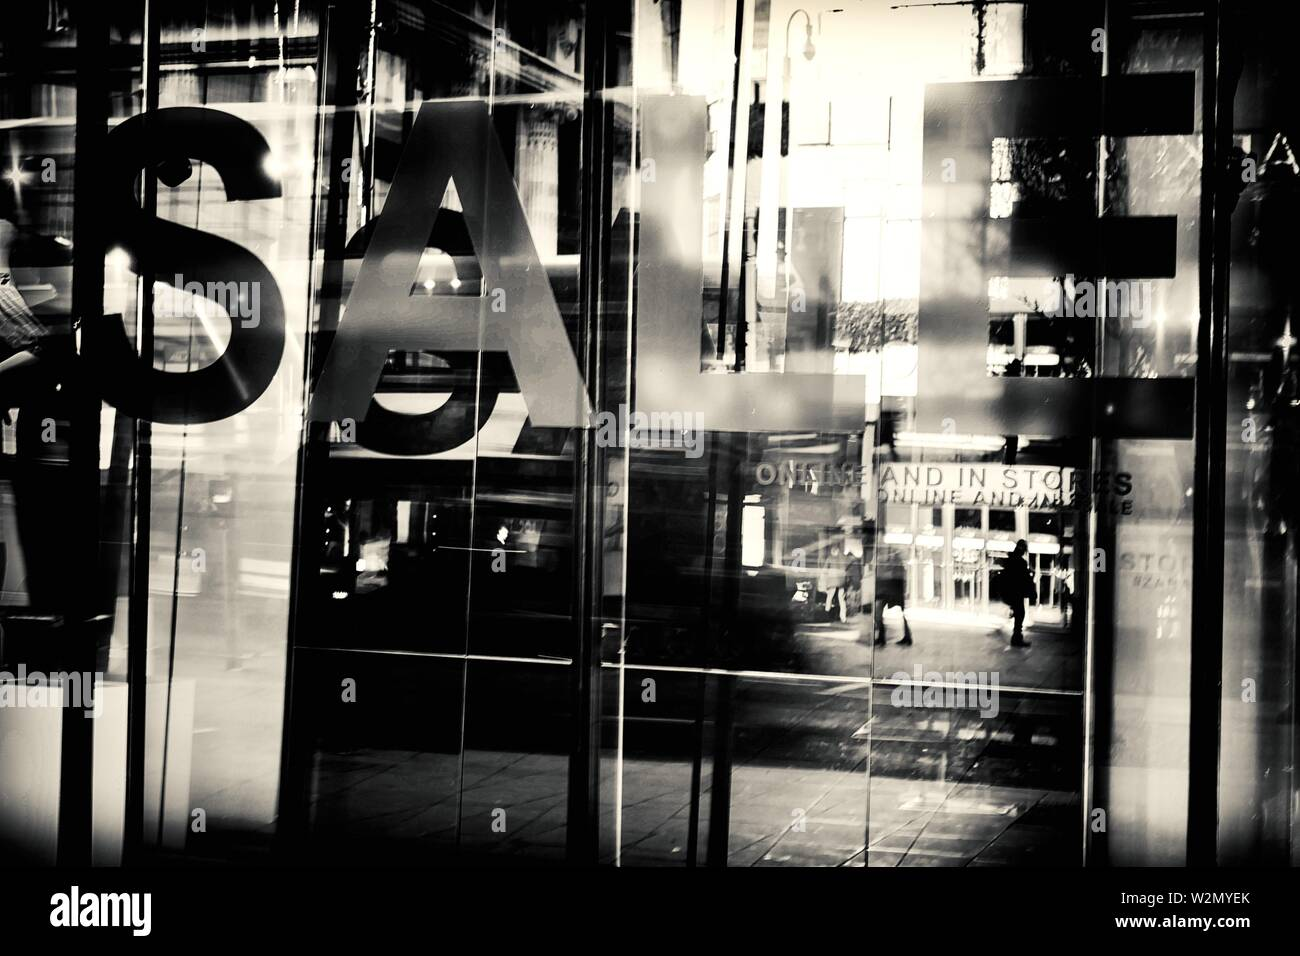 View of a street reflected in a glass with traffic, people and SALE written on glass.Oxford St. Londes, UK, Europe. - Stock Image